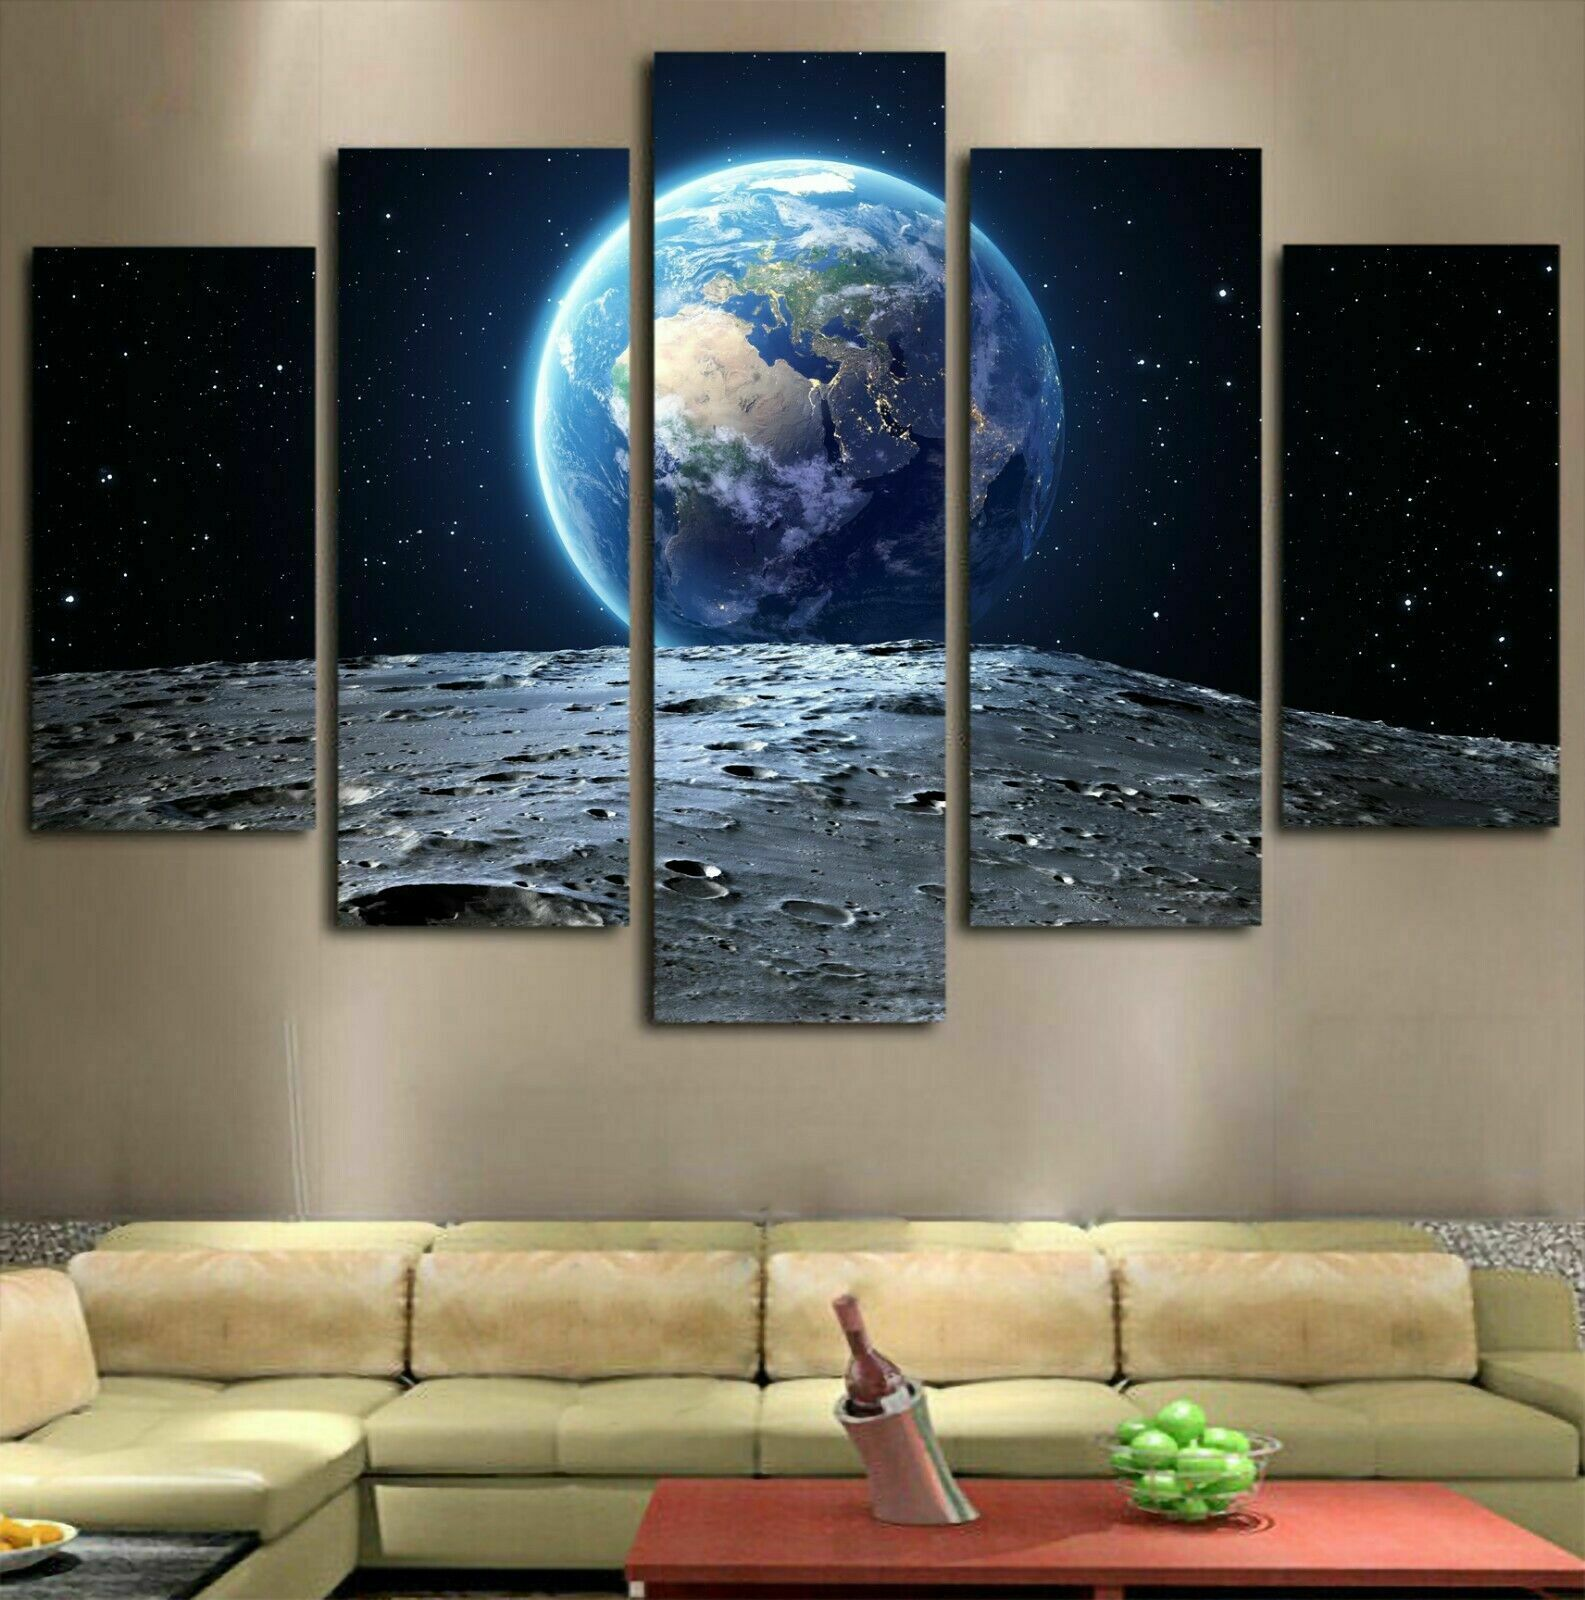 Earth View Moon Space Surface 5 Pieces Canvas Wall Art Poster Print Home Decor